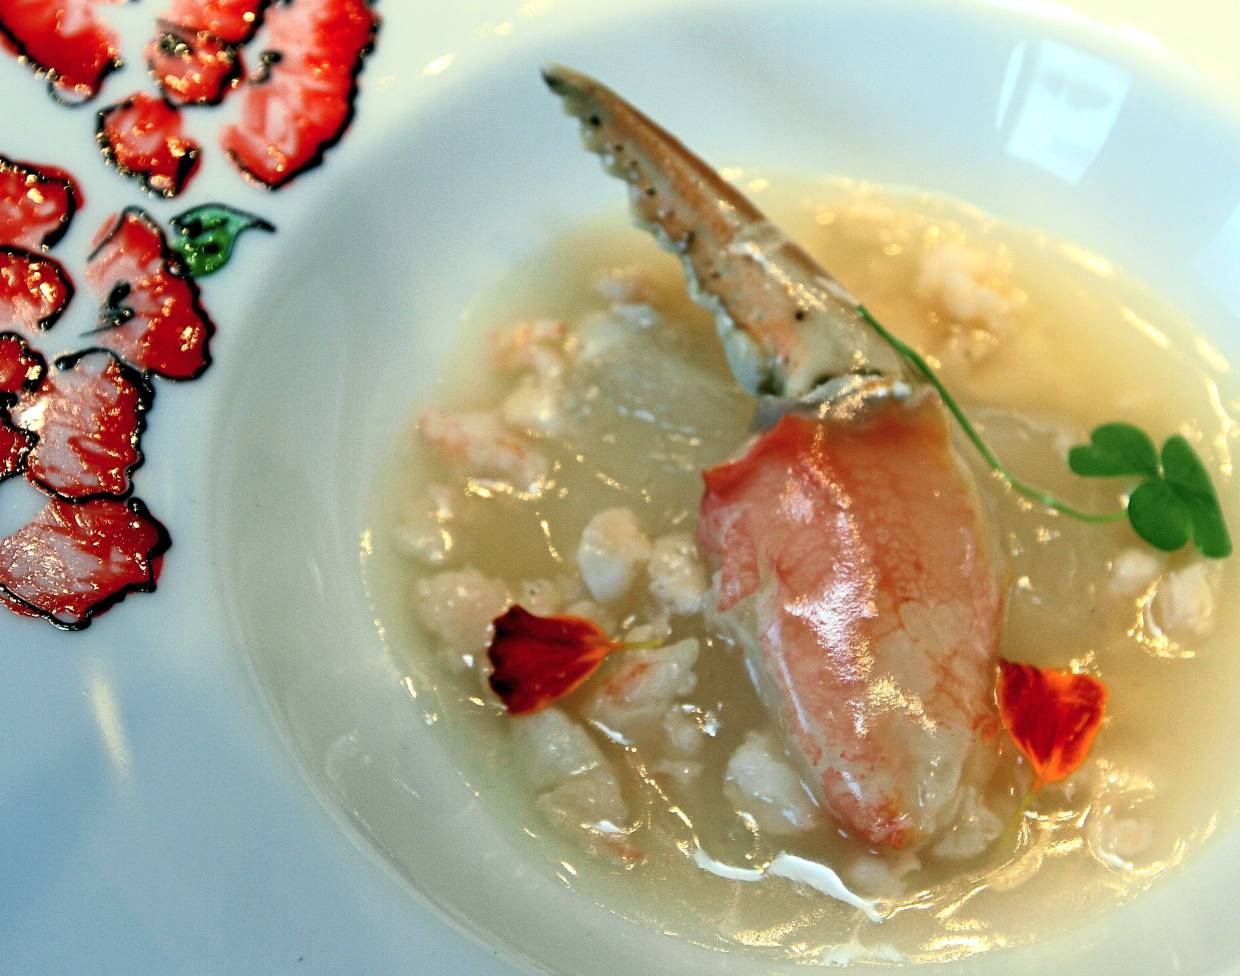 Braised Imperial Bird's Nest, Whole Crab Claw, Minced Prawns Soup from Yen's a la carte menu.